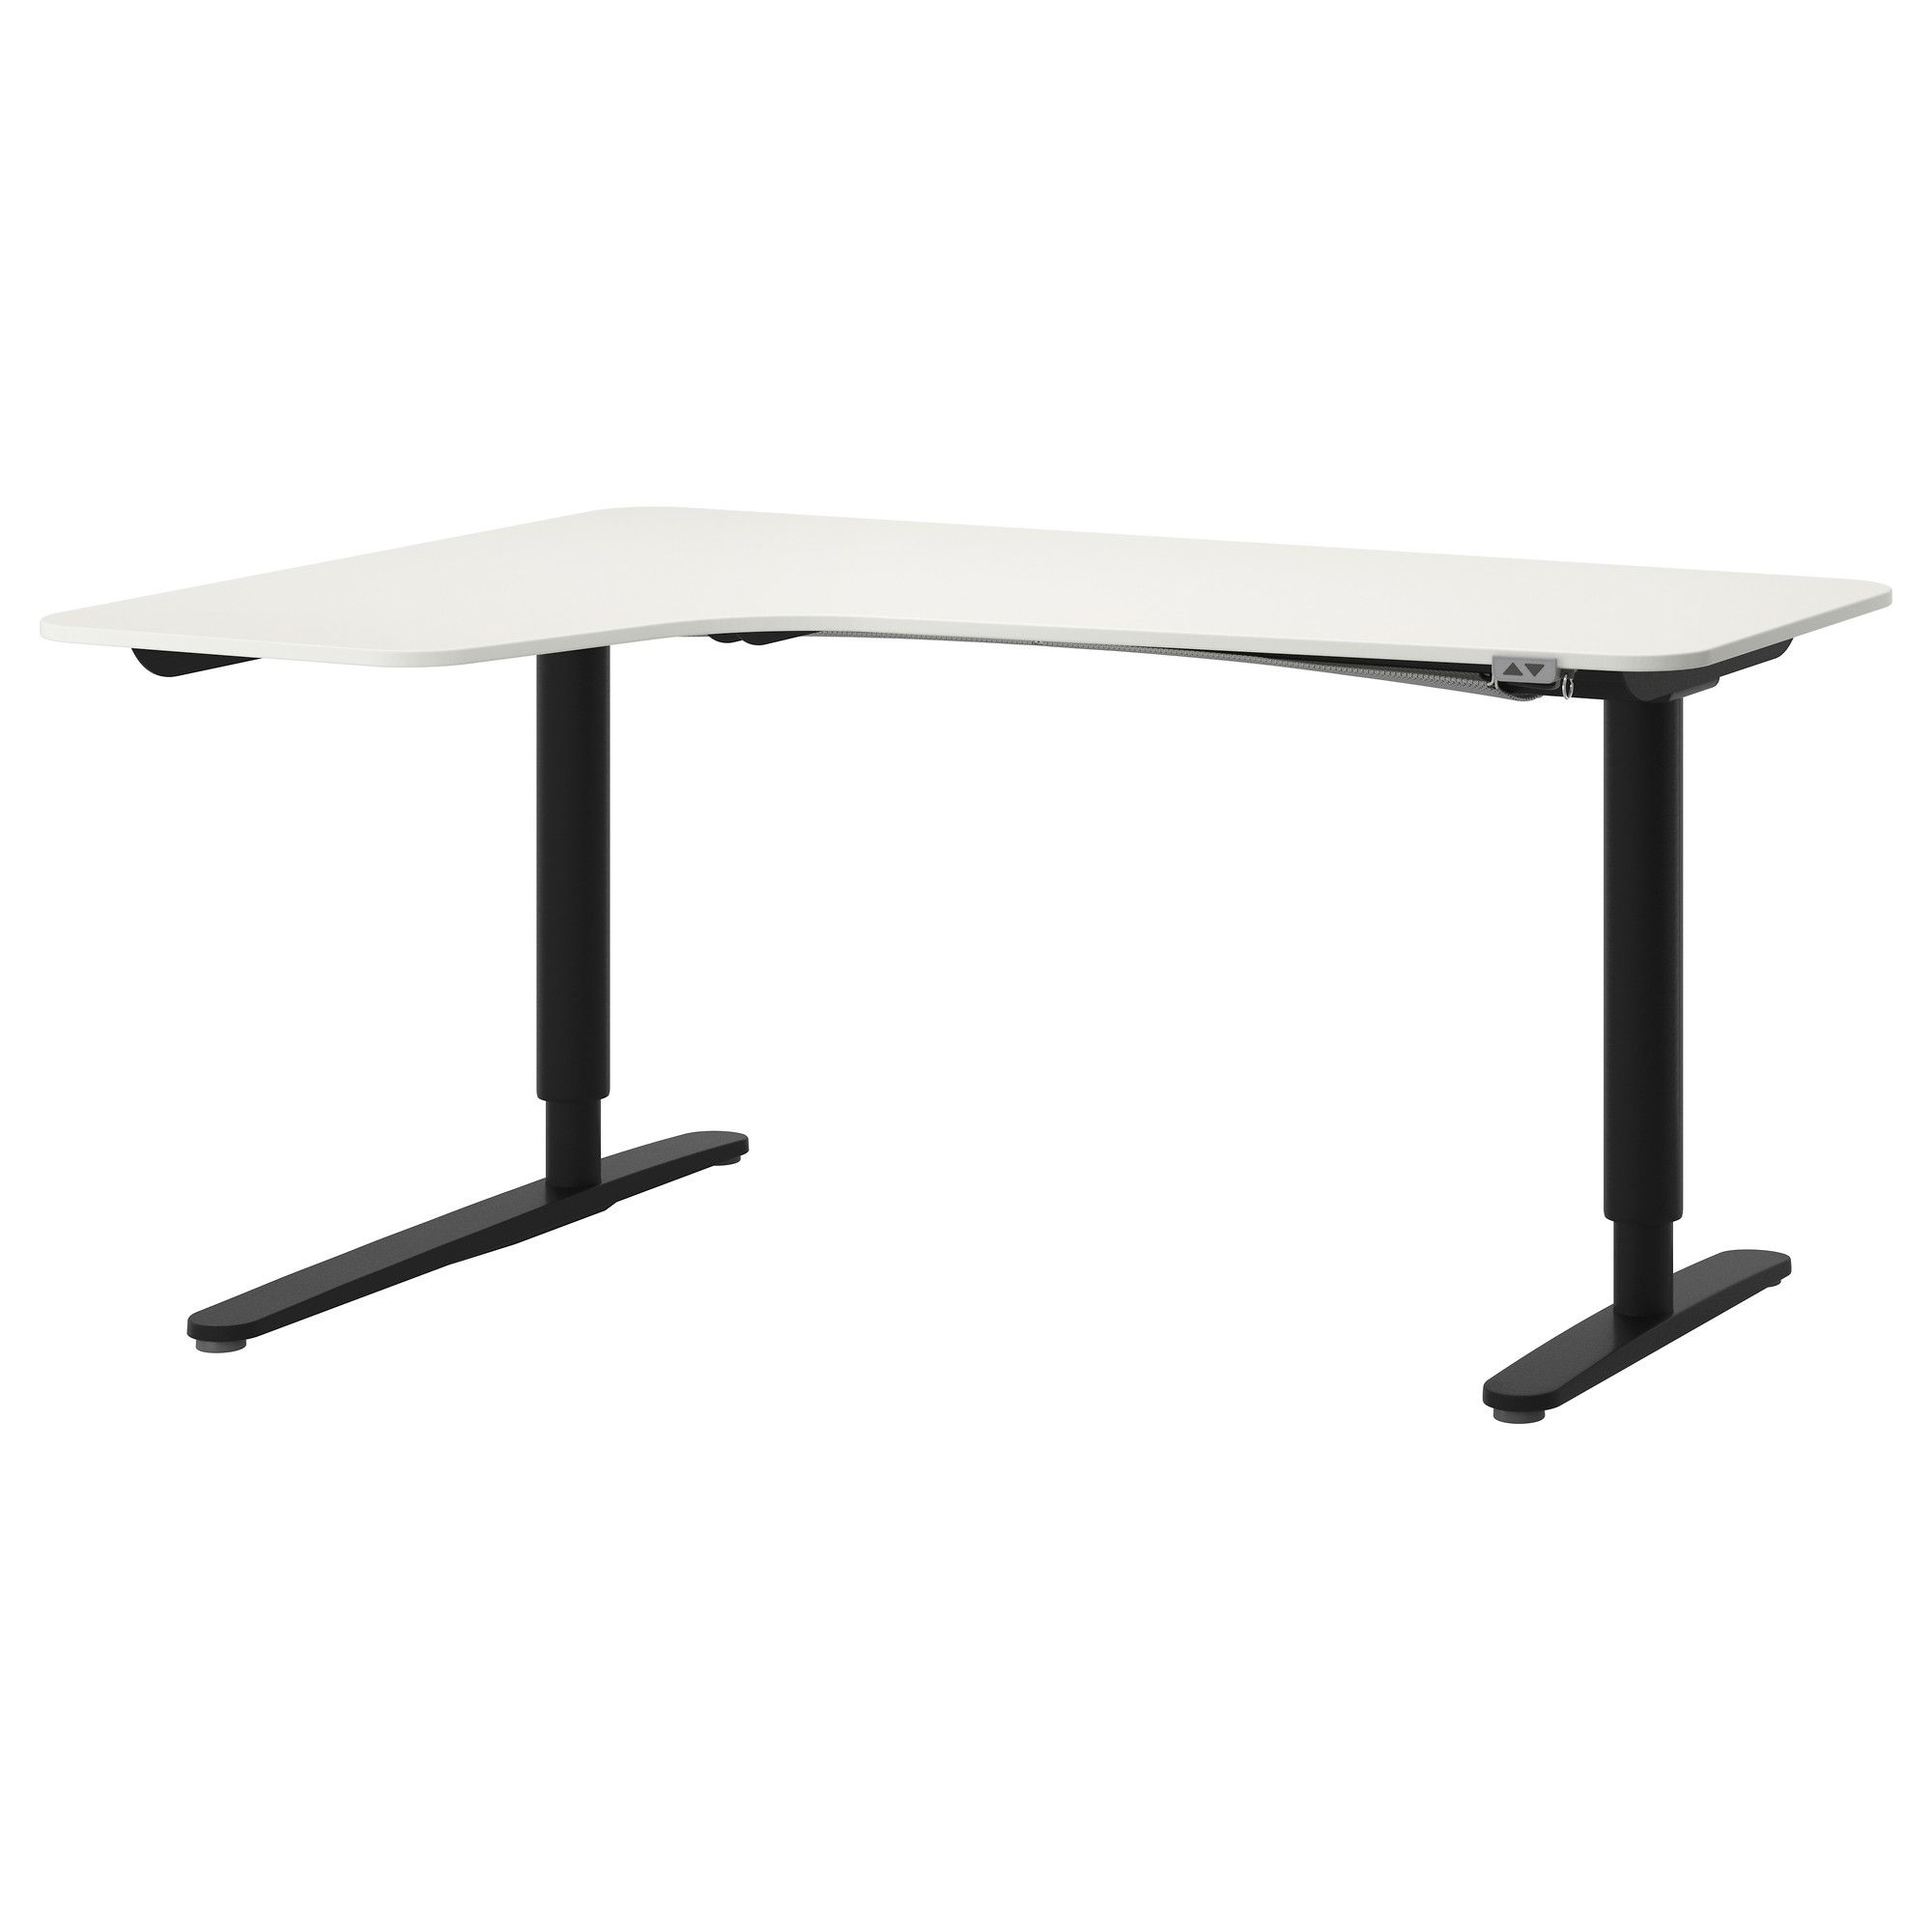 Furniture And Home Furnishings Ikea Bekant Office Table Home Office Furniture